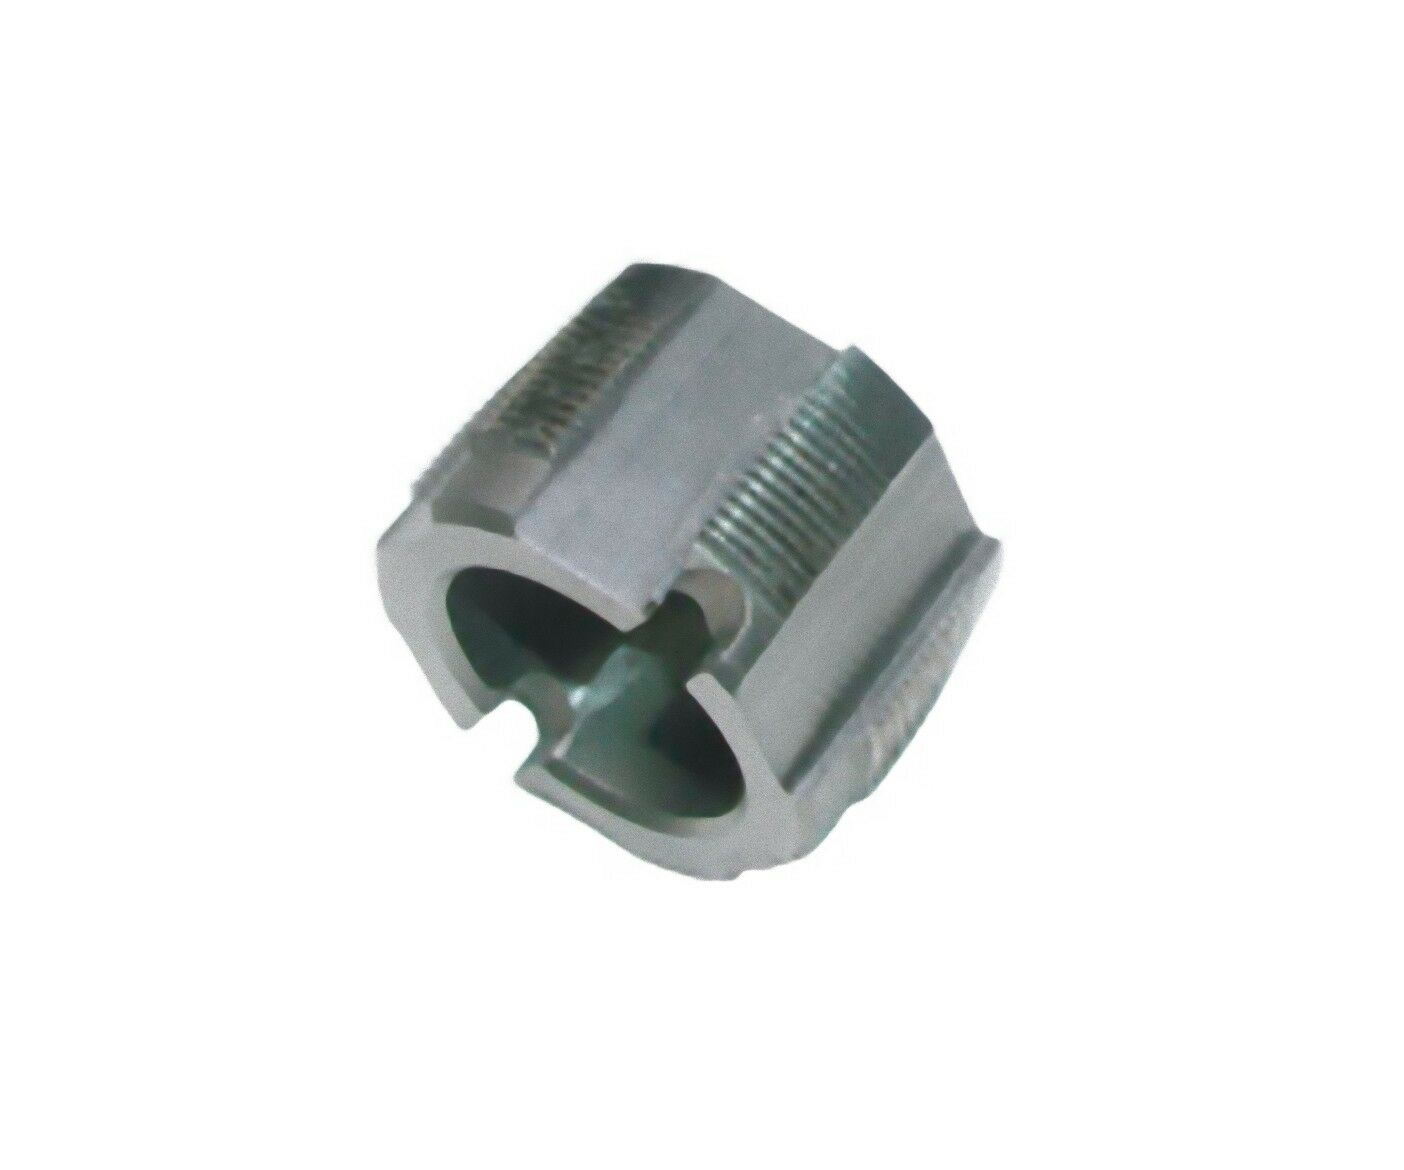 Hozan C-405-2 TAP (for Italian) Optional Parts for C-405